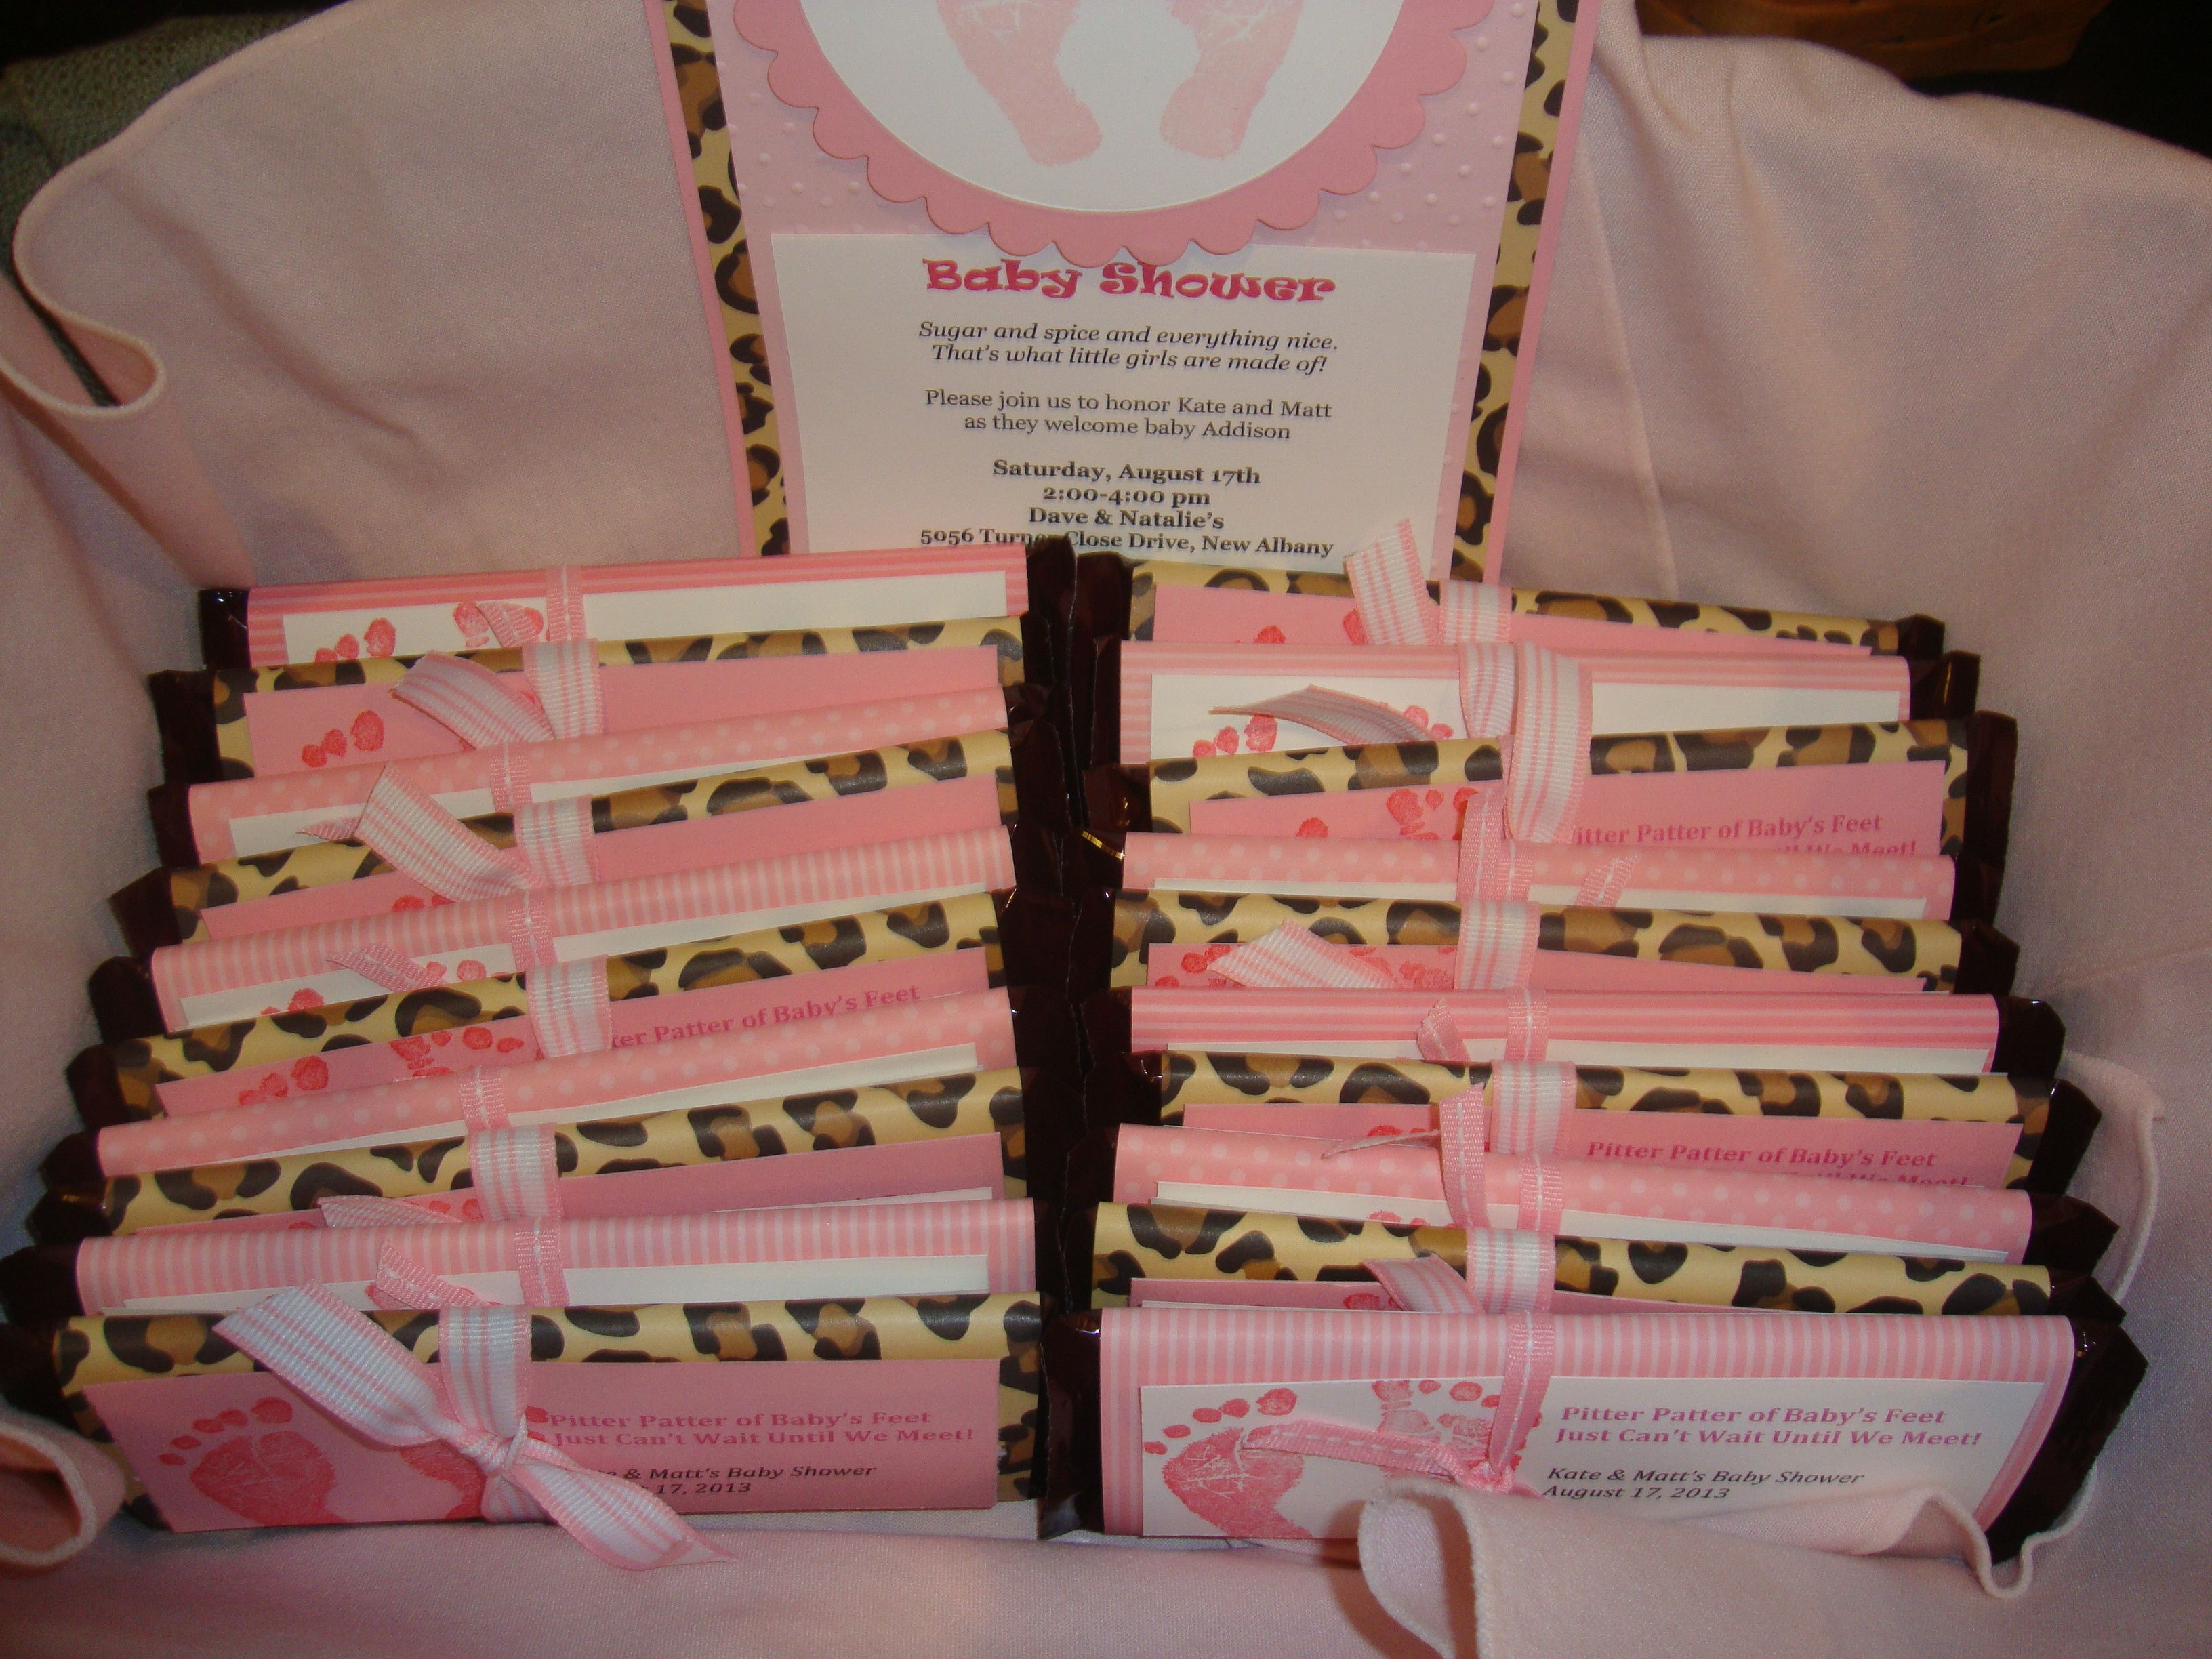 Baby Shower Favor Ideas Part - 29: Baby Shower Party Favor Idea - Hershey Chocolate Bar Wrapped In Designer  Paper. Simple And